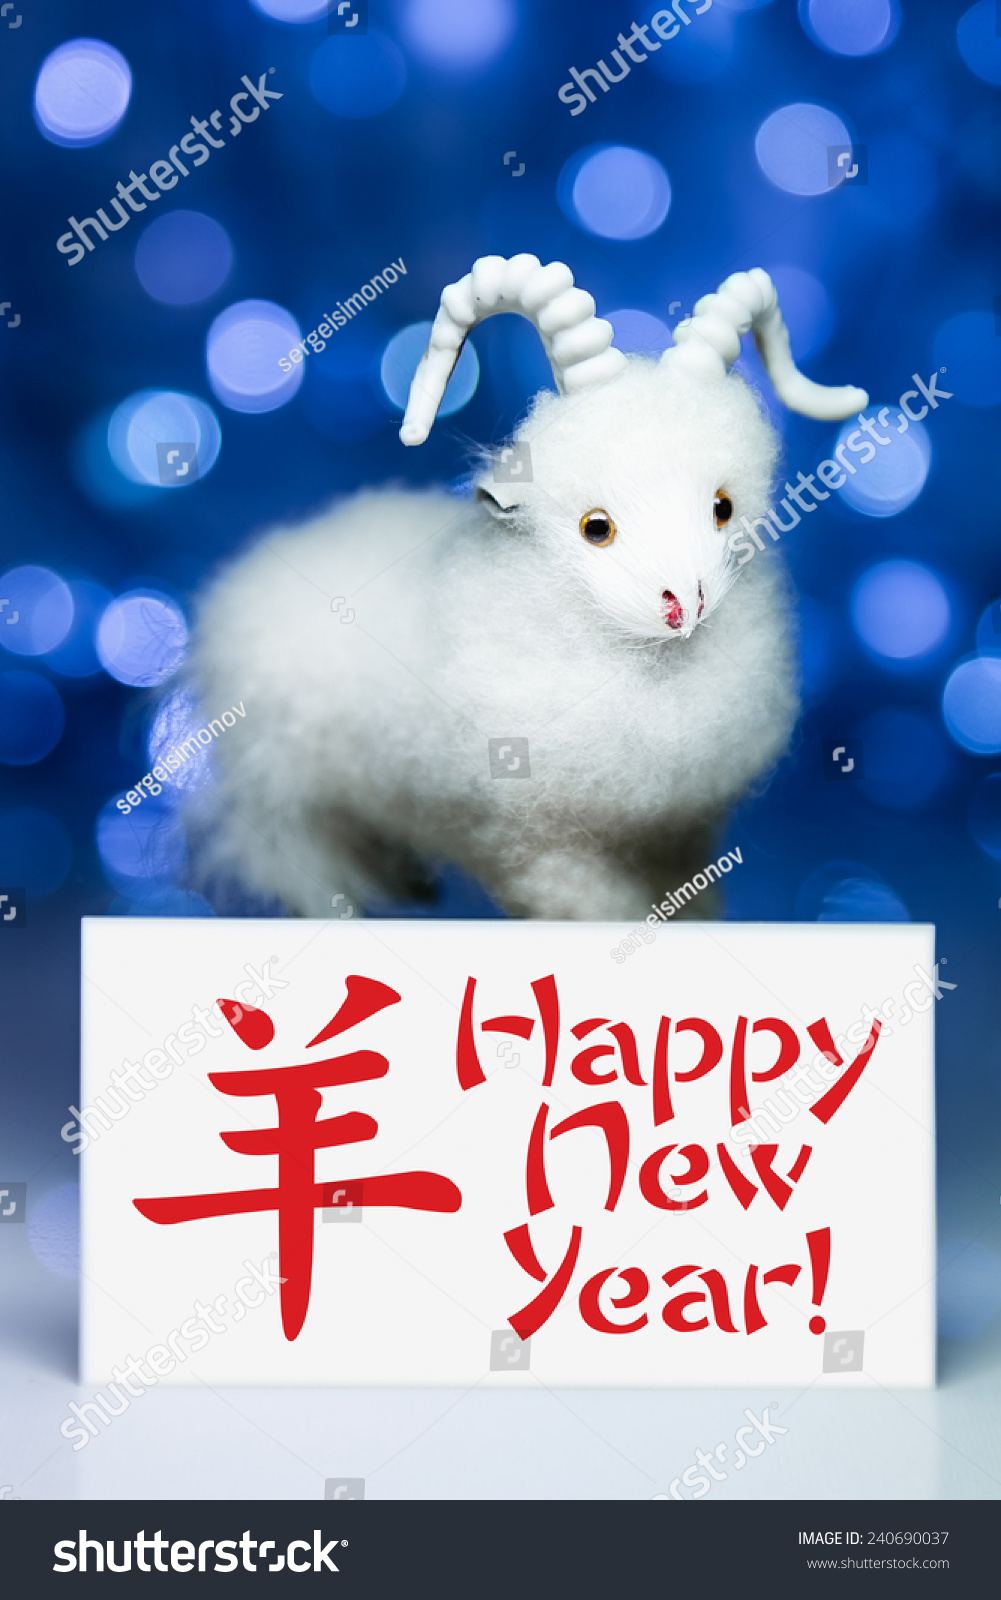 New year greeting card white goat stock photo 240690037 shutterstock new year greeting card with white goat or sheep toy the chinese symbol of 2015 year kristyandbryce Image collections